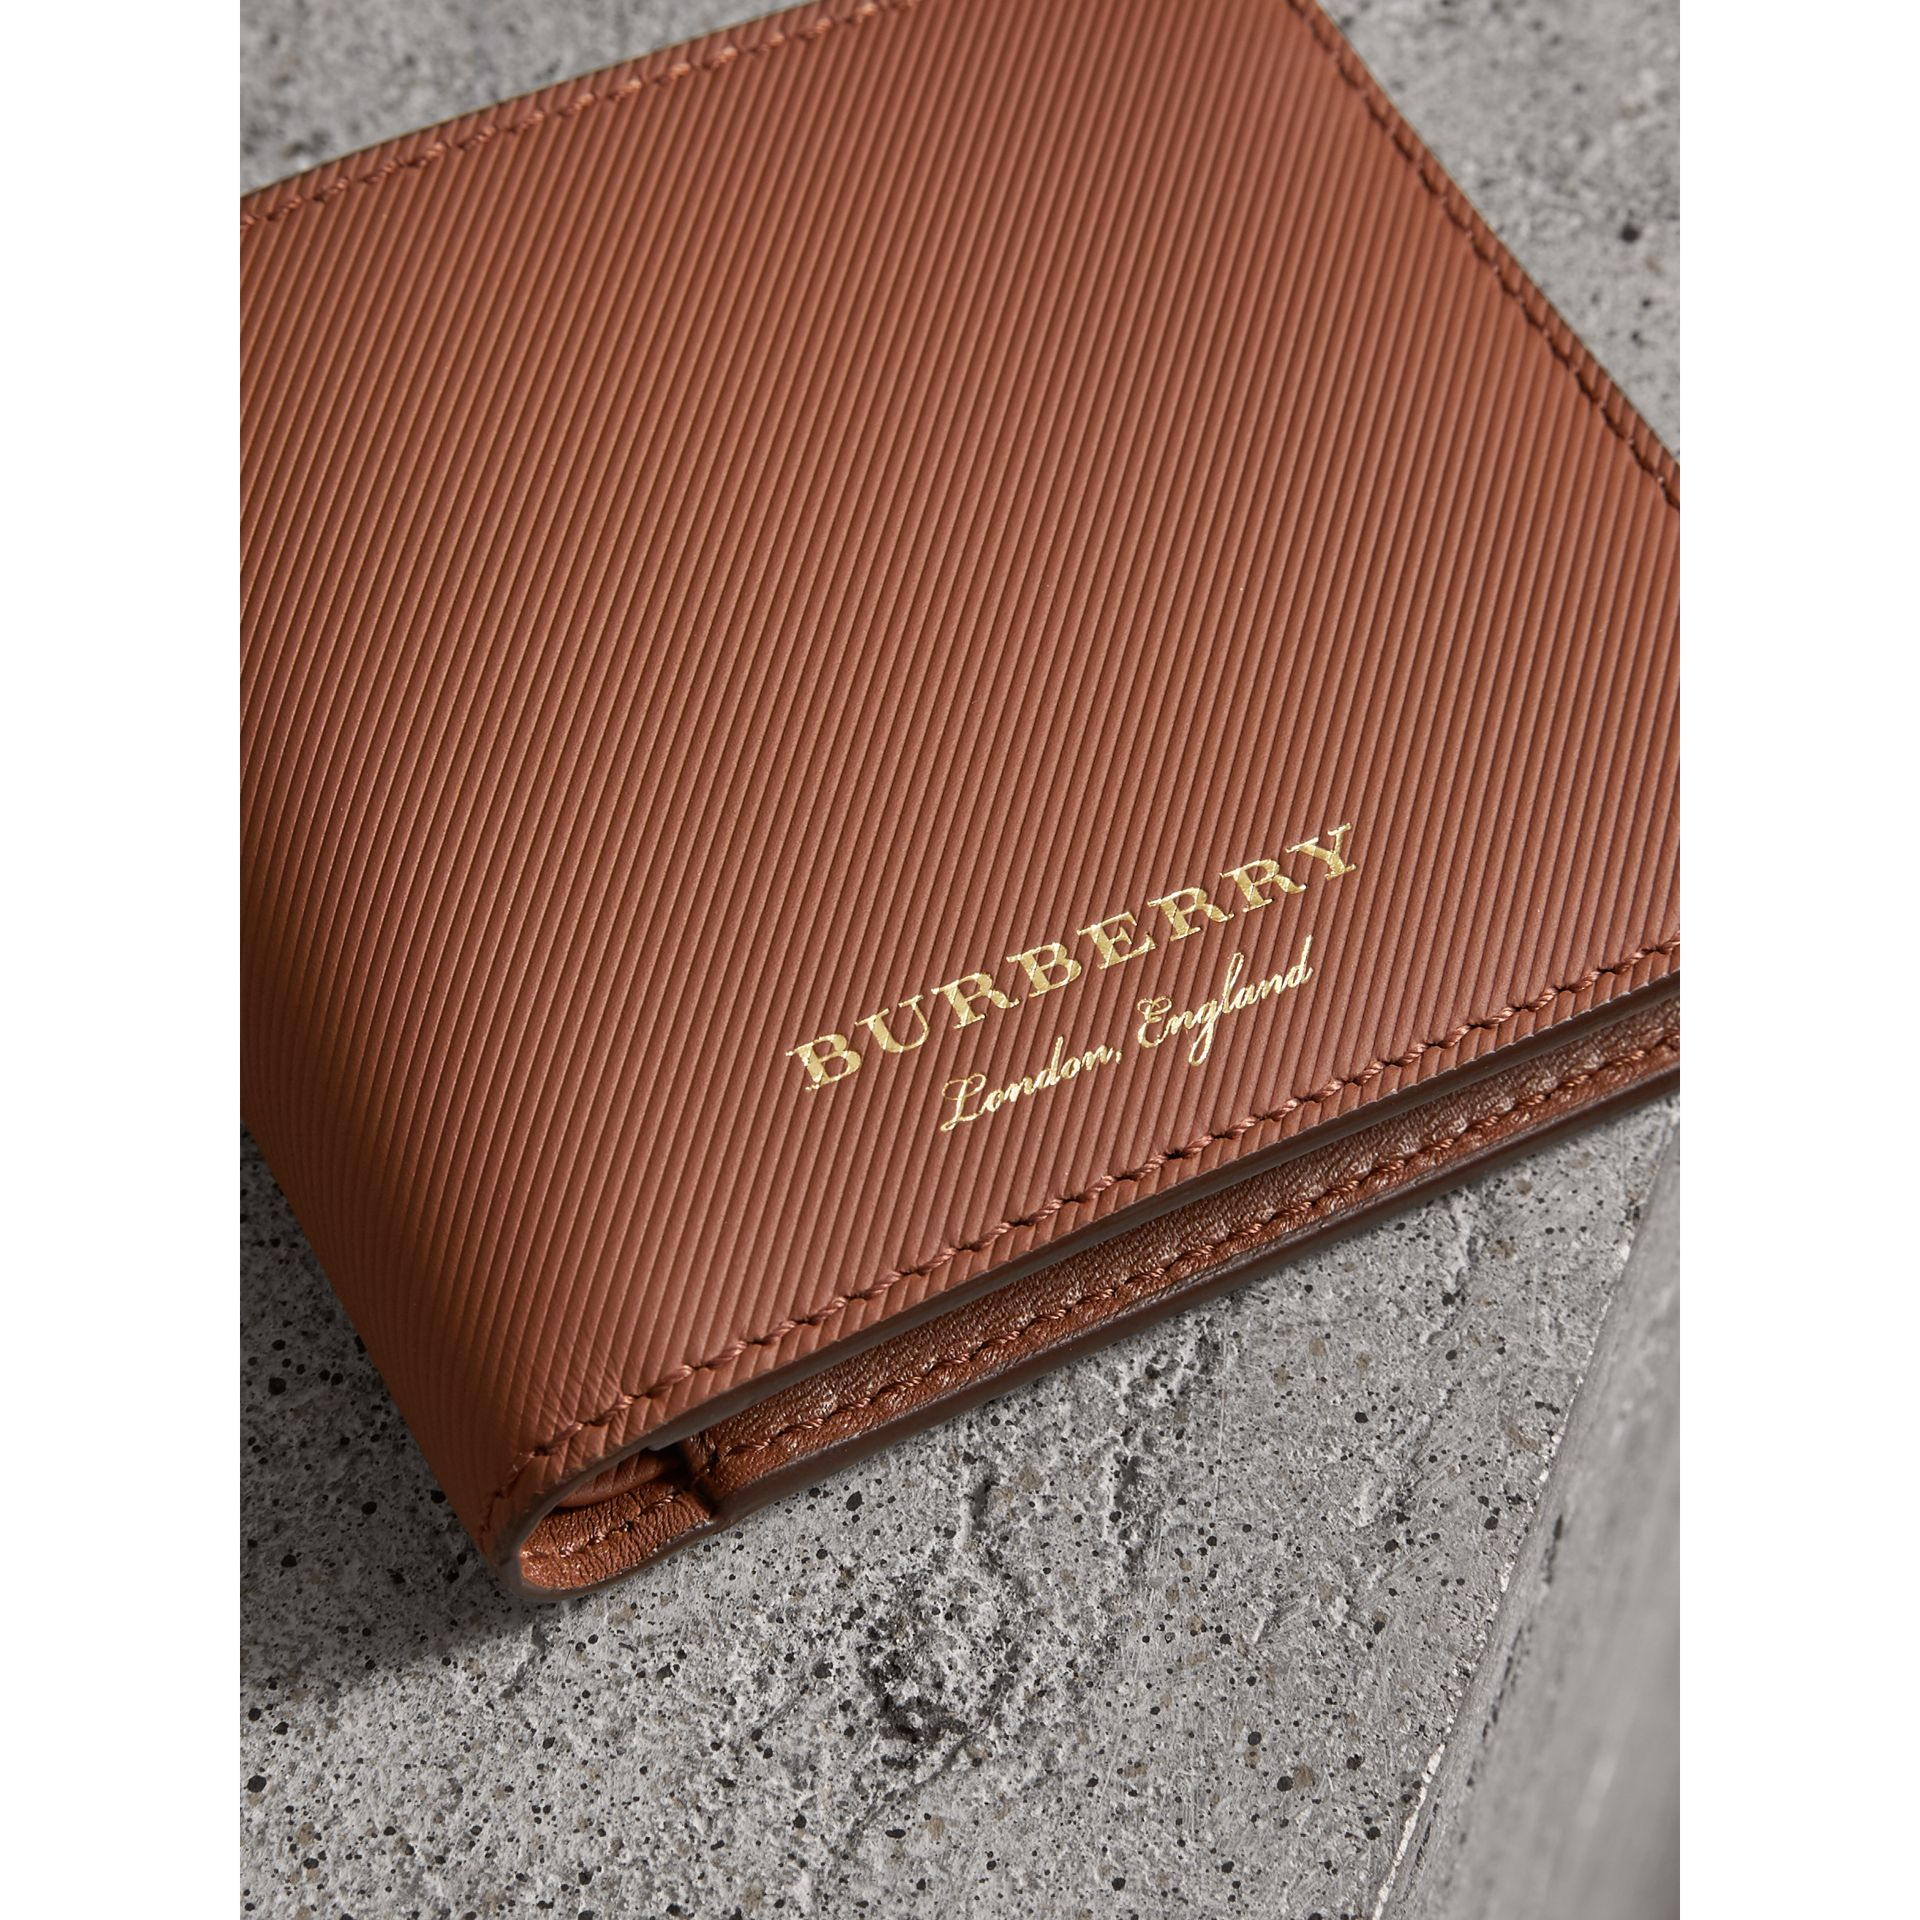 Trench Leather Bifold Wallet with Removable Card Case in Tan - Men | Burberry United Kingdom - gallery image 1